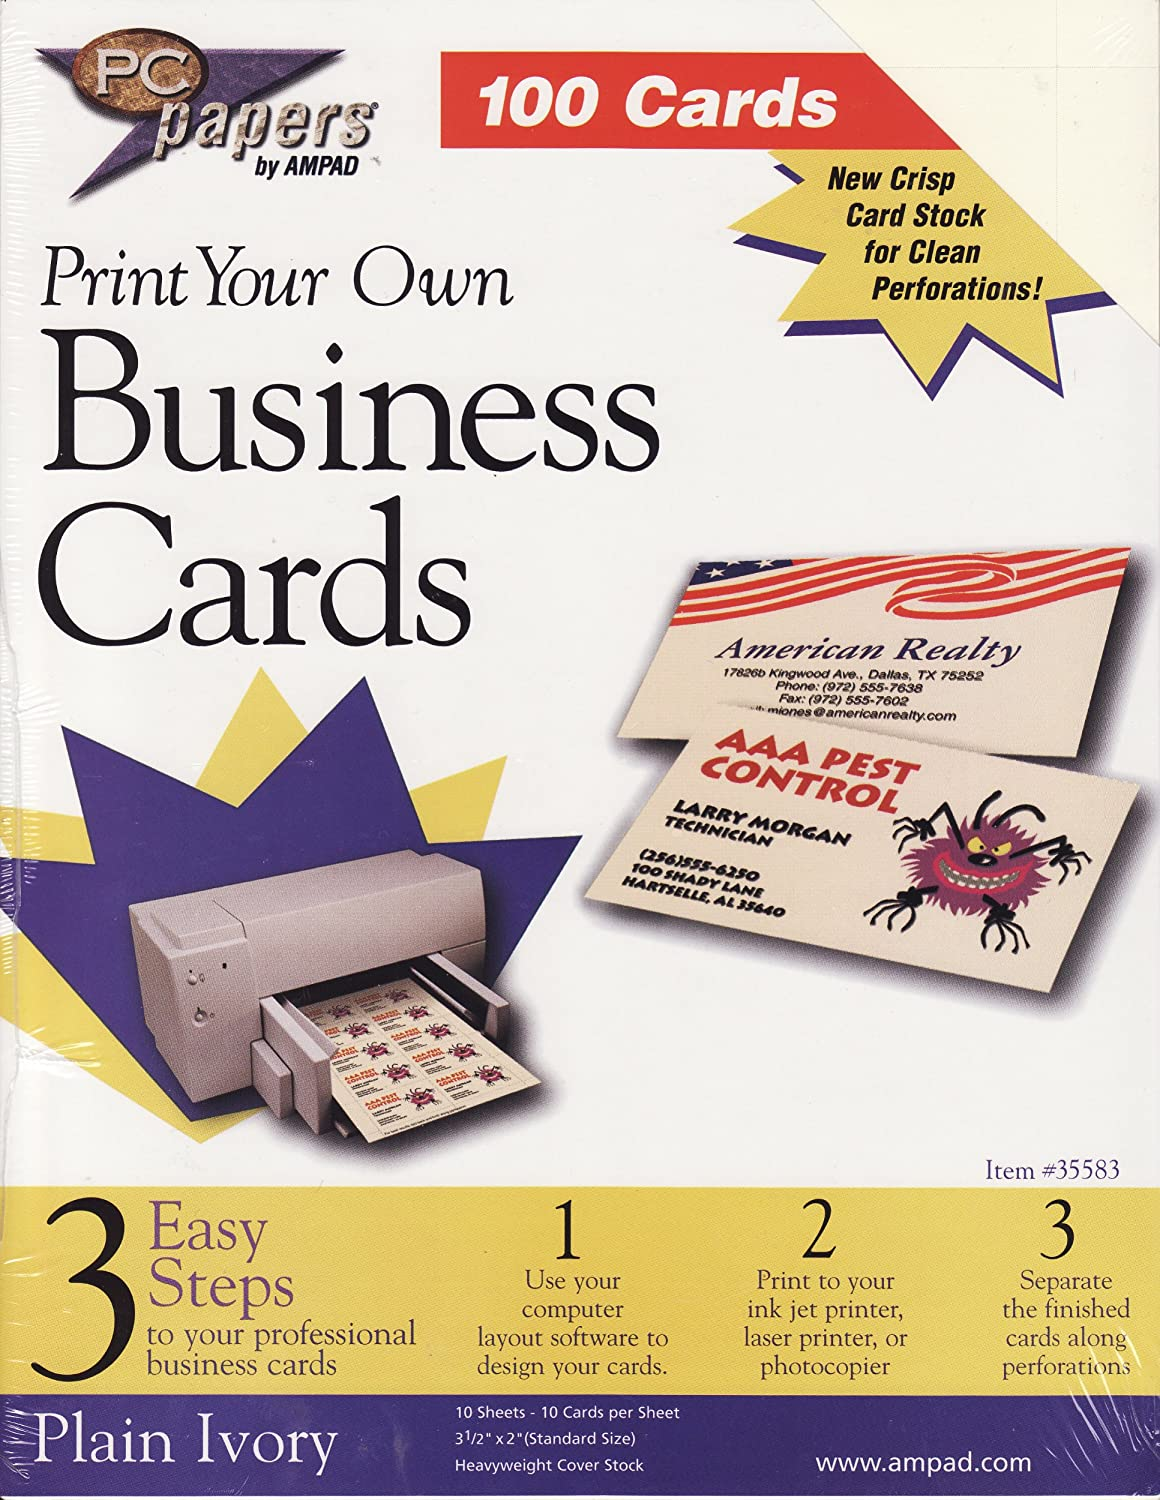 Print Your Own Business Cards By Ampad Amazon Office Products